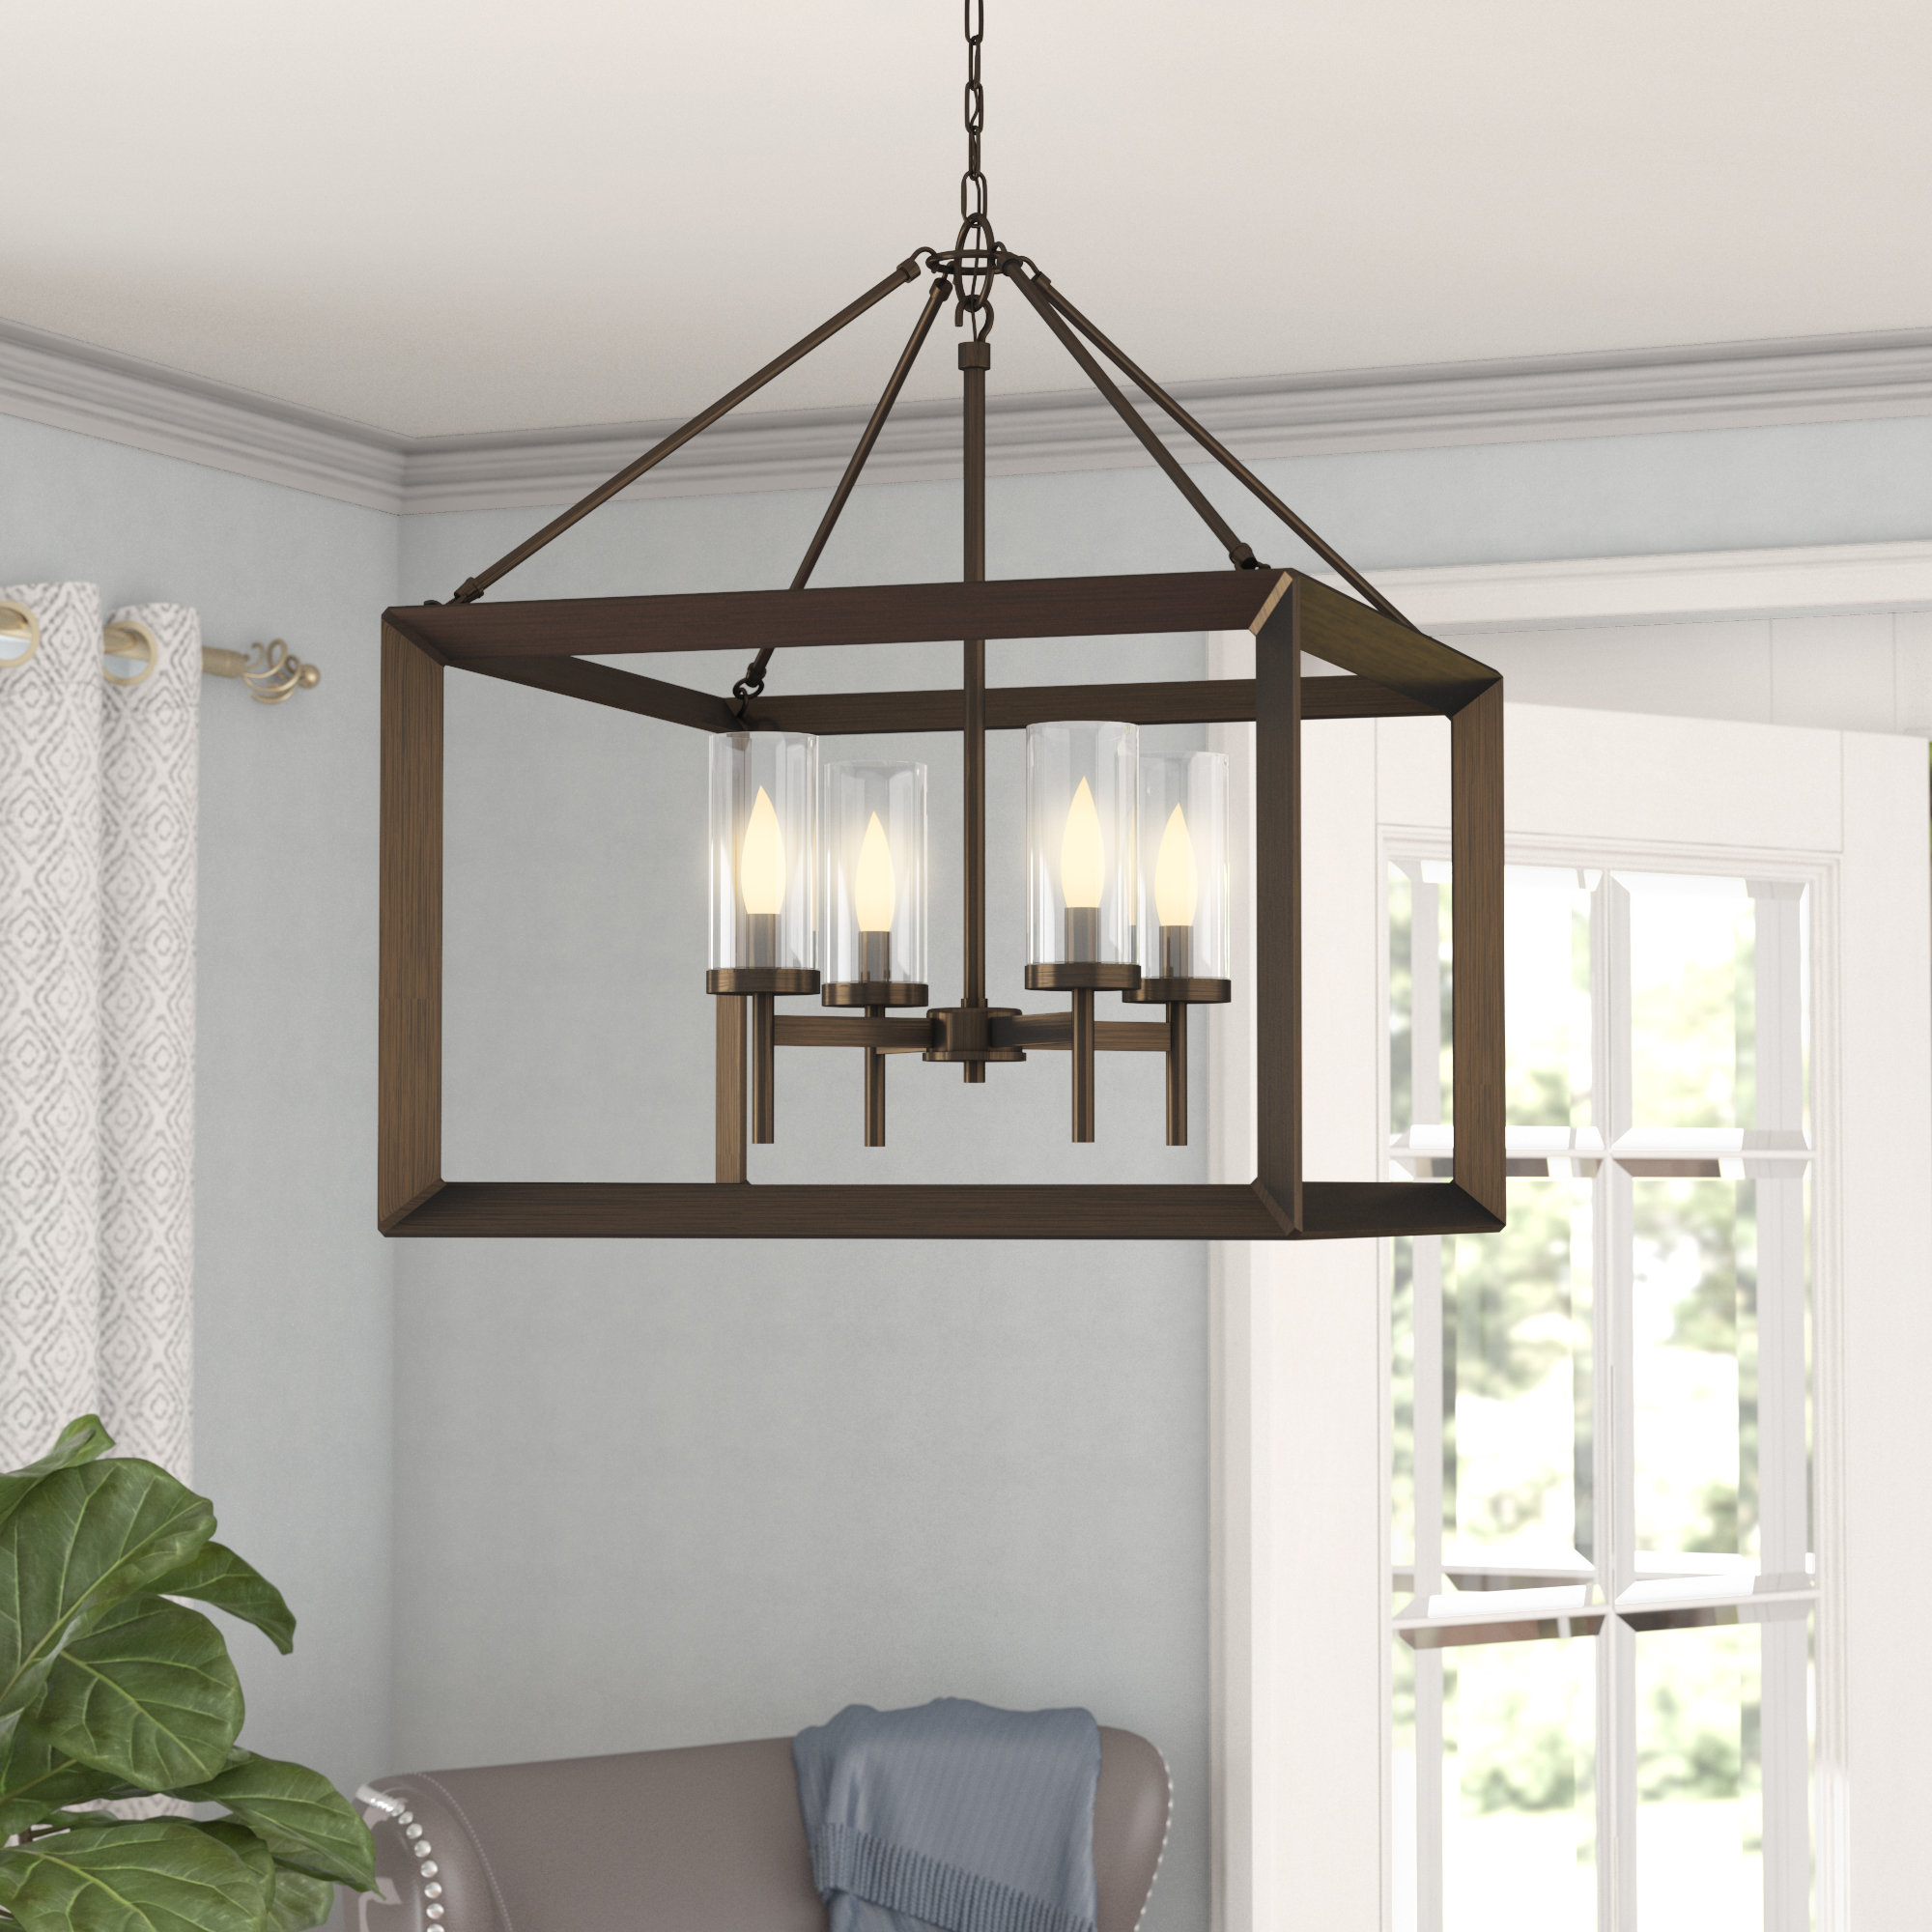 Newest Thorne 4-Light Lantern Rectangle Pendants with Thorne 4-Light Lantern Rectangle Pendant